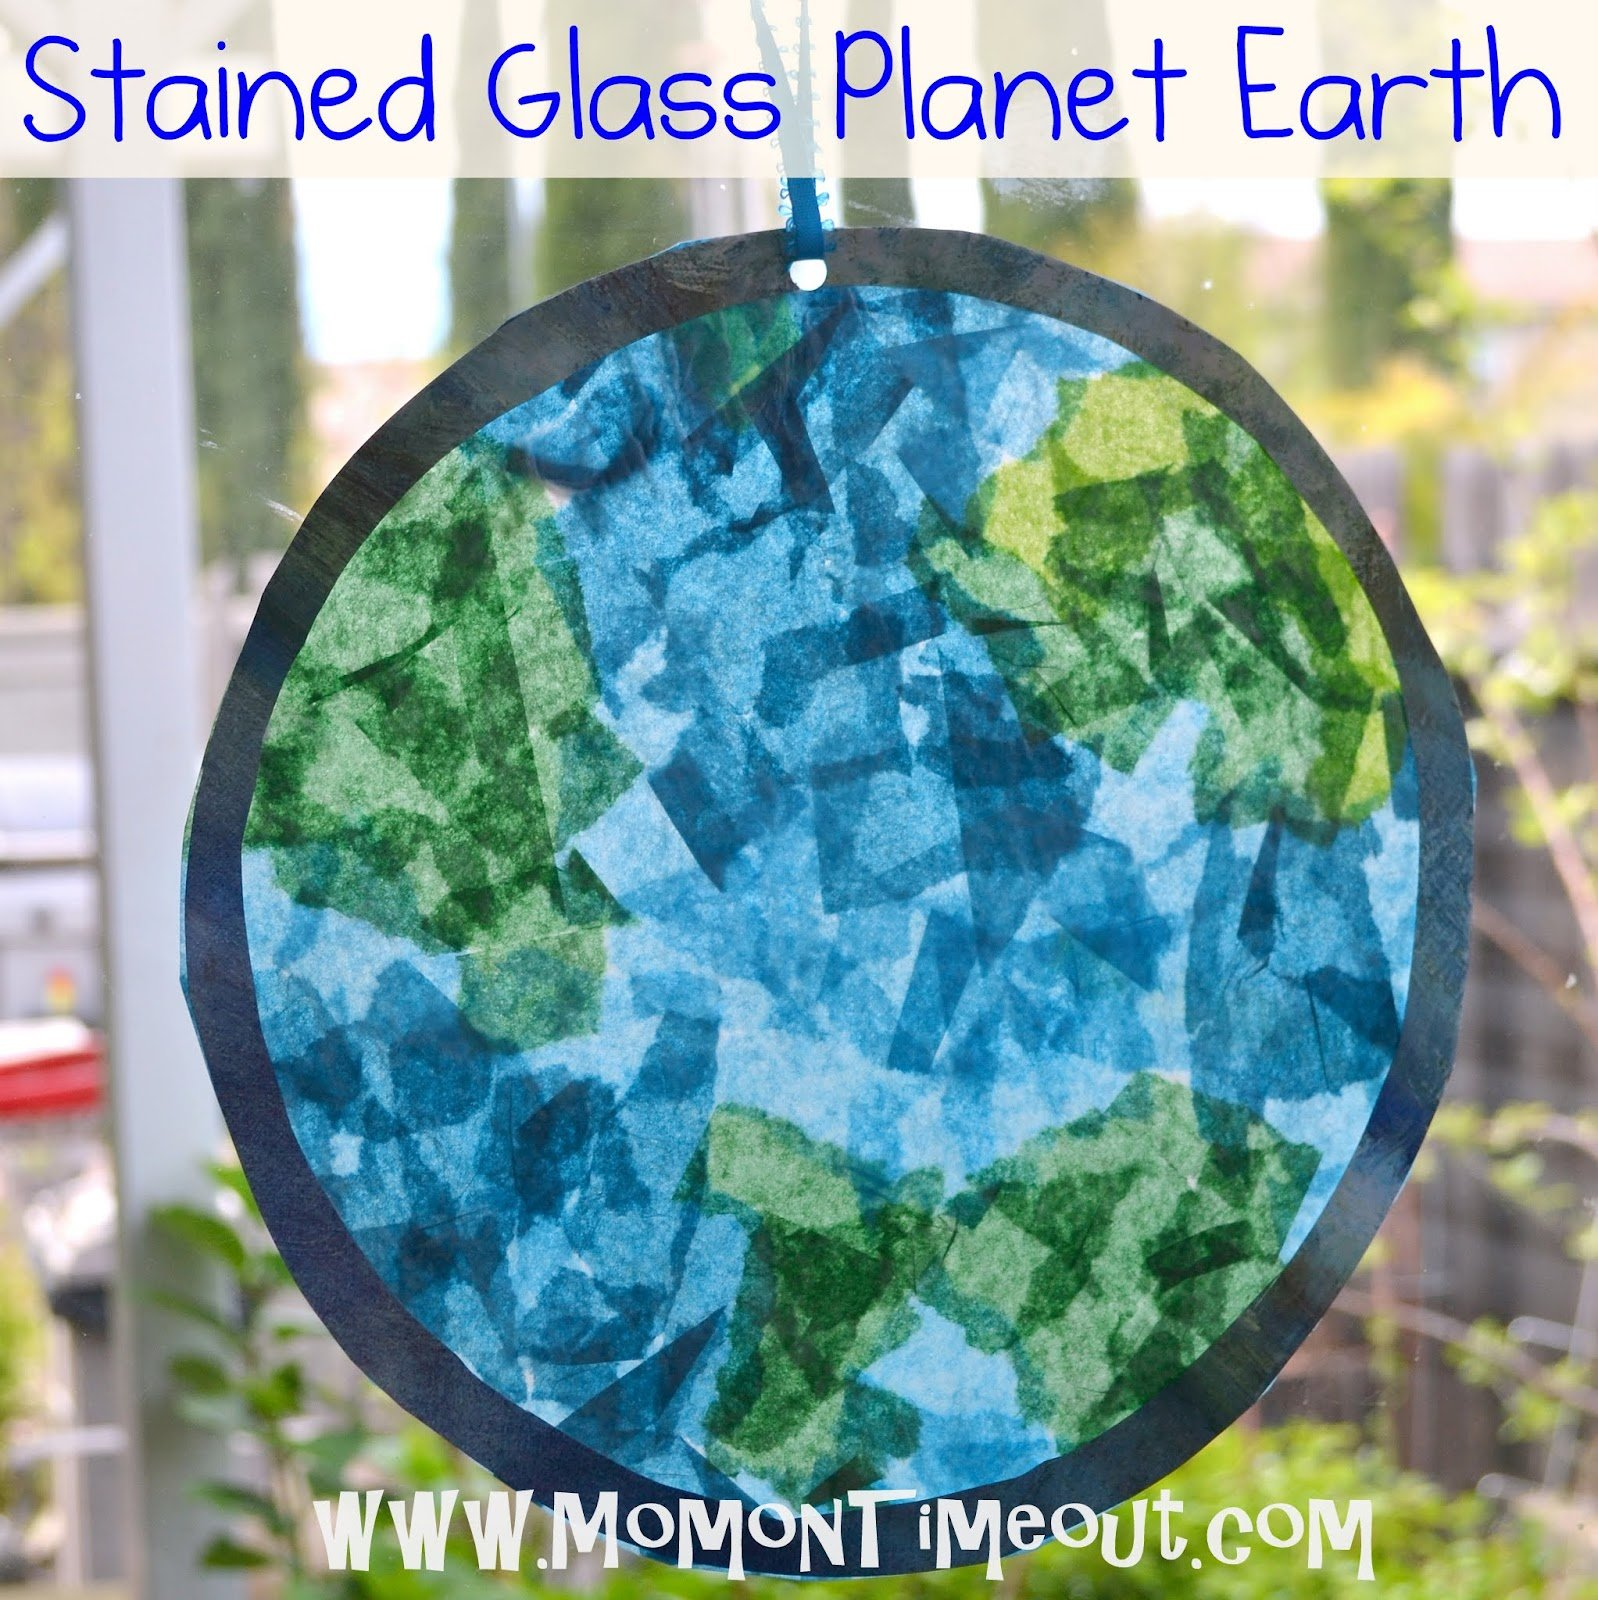 Stained Glass Planet Earth for Earth Day 15 Kids Earth Day Crafts